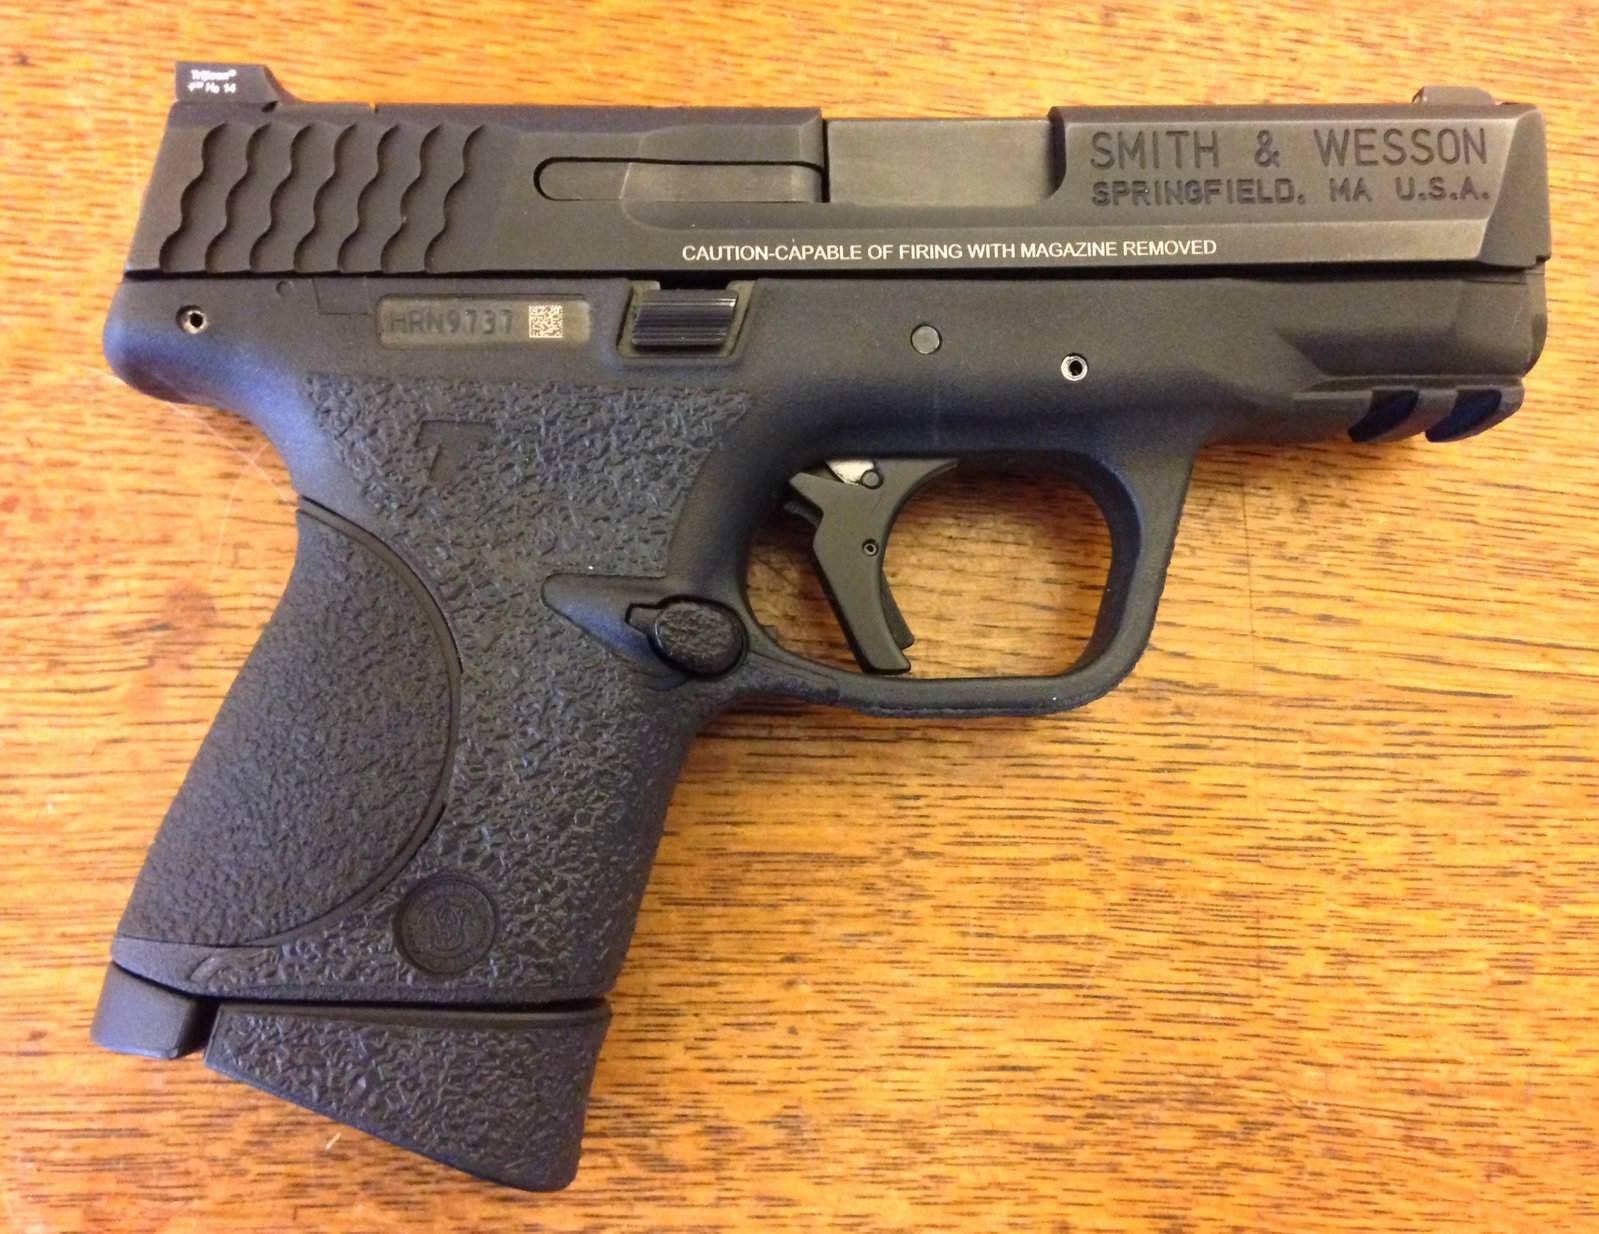 Smith And Wesson M&P 9c (compact 9mm) 12+1 Or 17